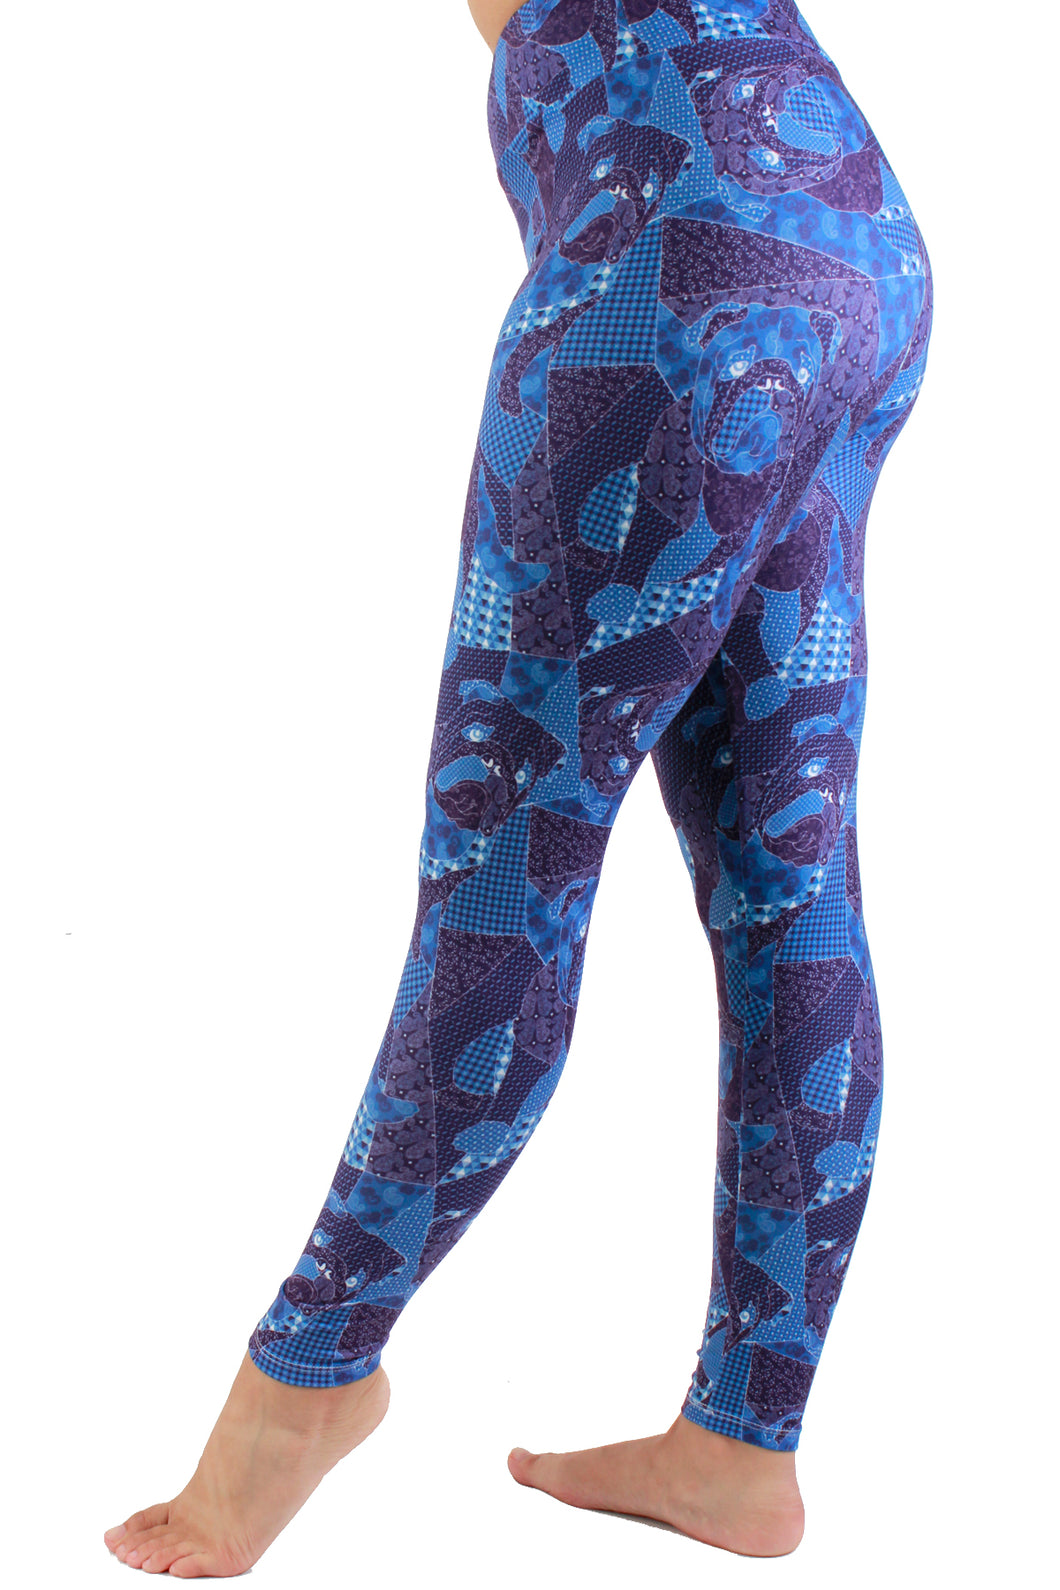 Cool Bulldog Designer Legging